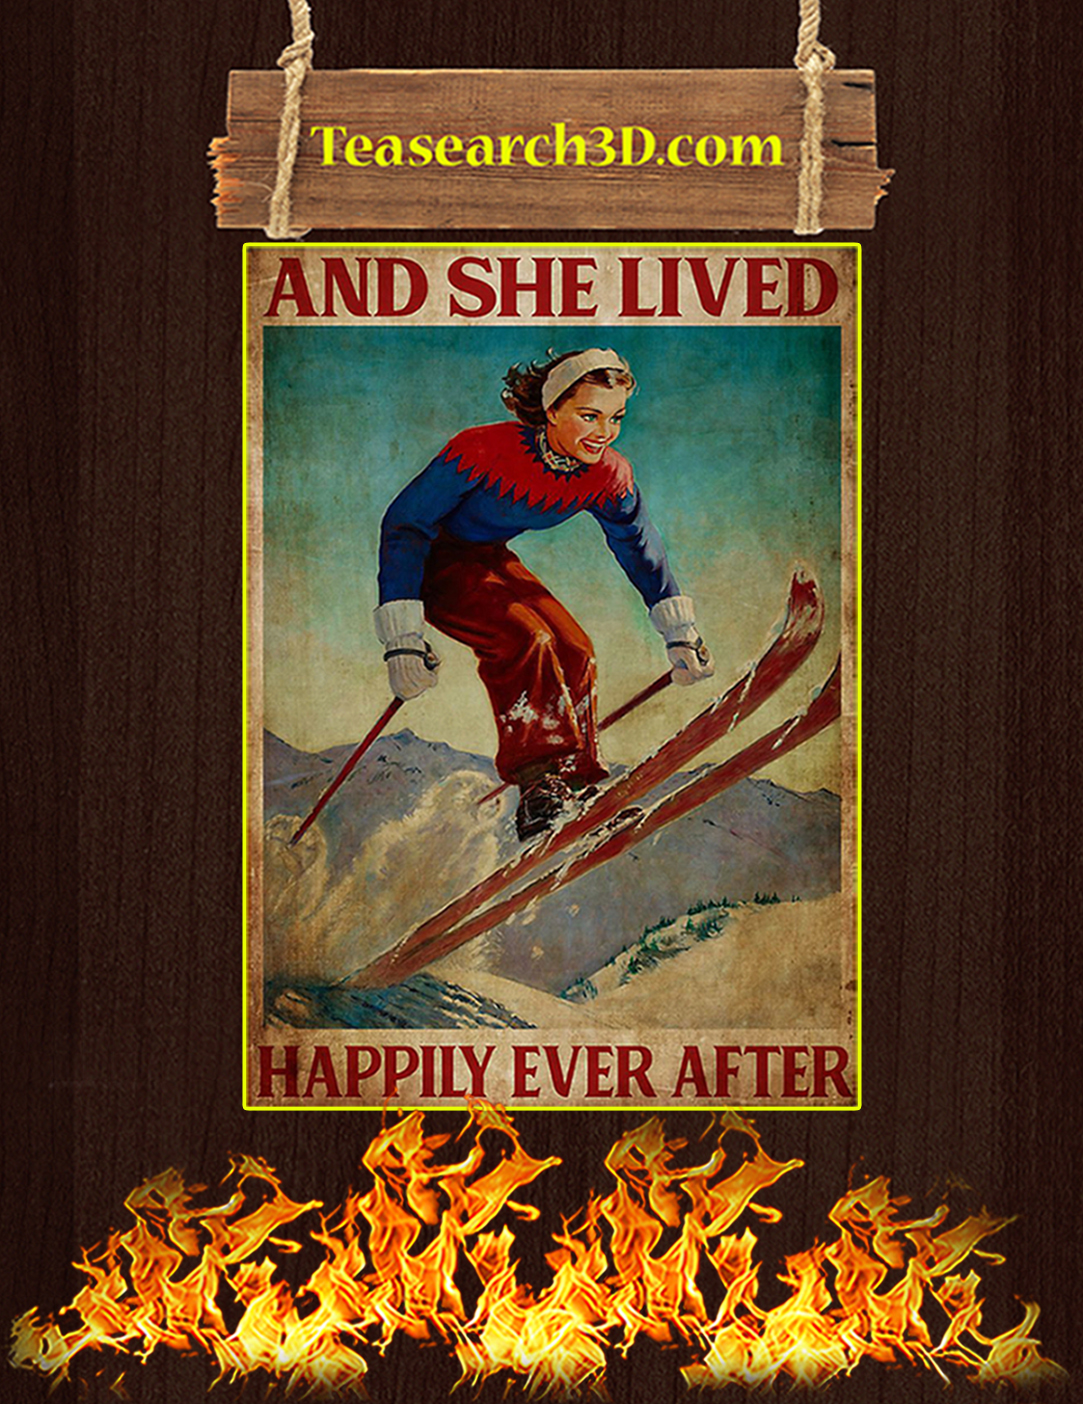 Skiing and she lived happily ever after poster A2